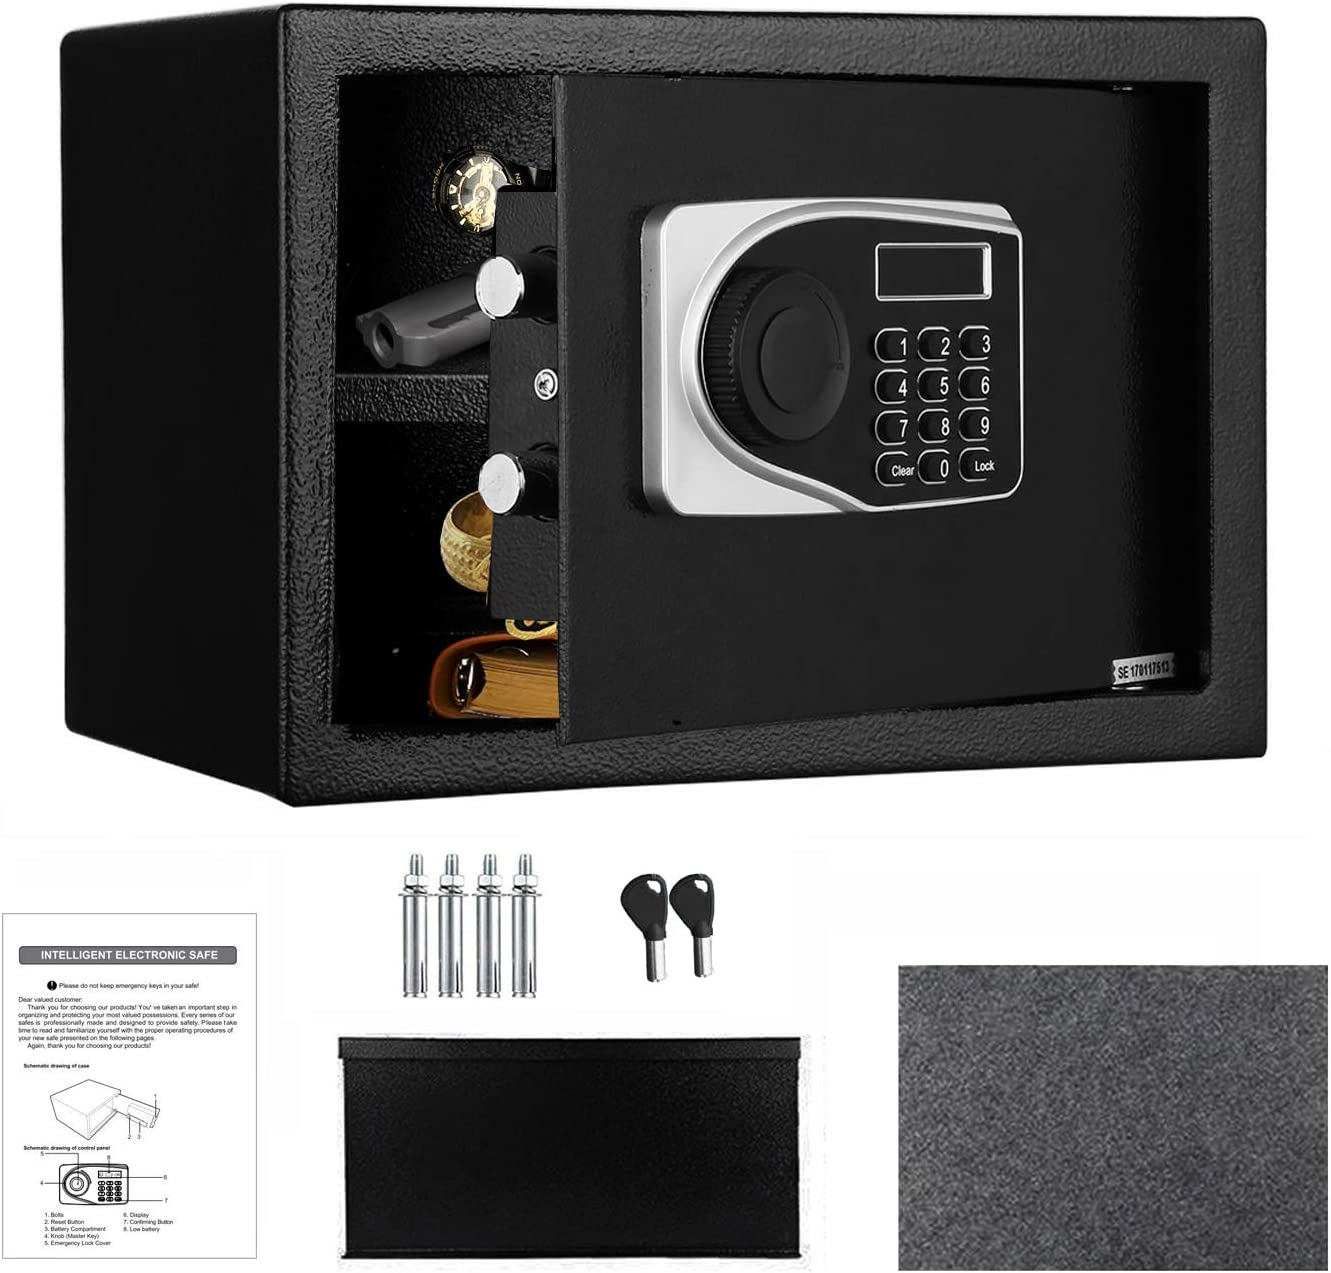 Safe Box, Safe and Lock Box,0.57 Cubic Feet Electronic Security Digital Safe, Home Safe for Storing Jewelry Passports Cash Use Storage with Keys and Tools 13.7'' x 9.8'' x 9.8''